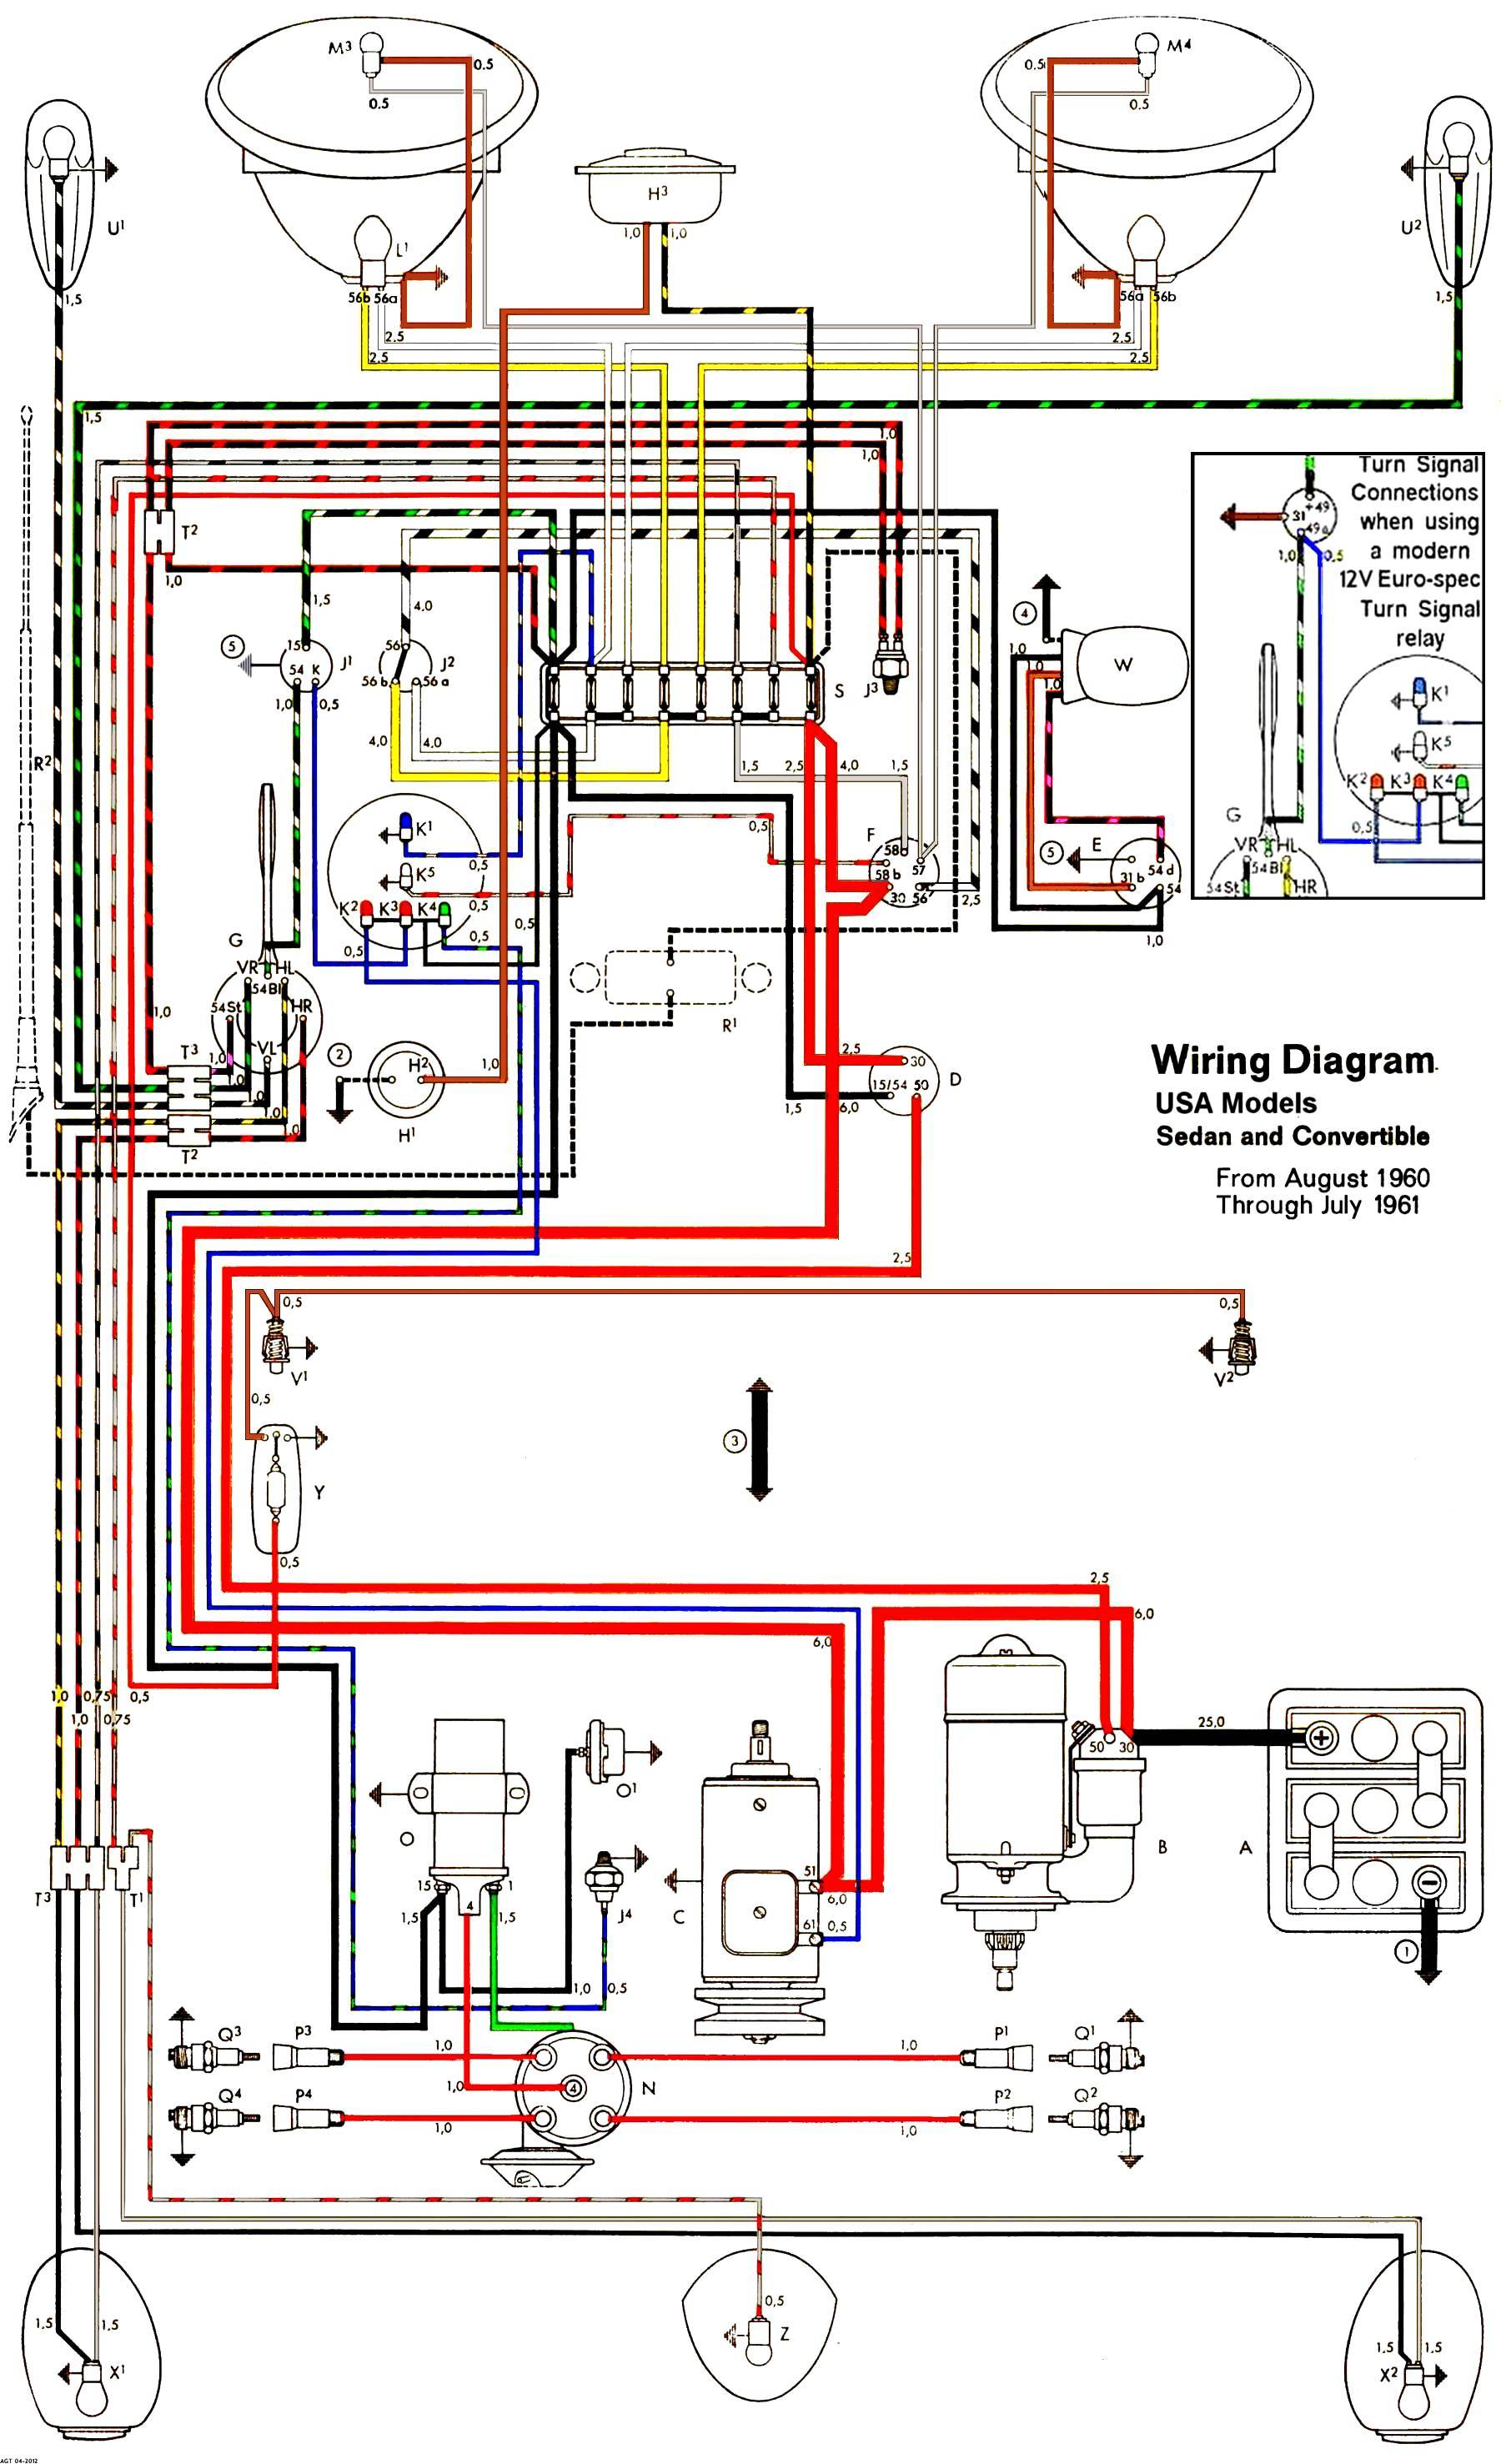 1961 vw wiring diagram 1961 wiring diagrams online thesamba com type 1 wiring diagrams